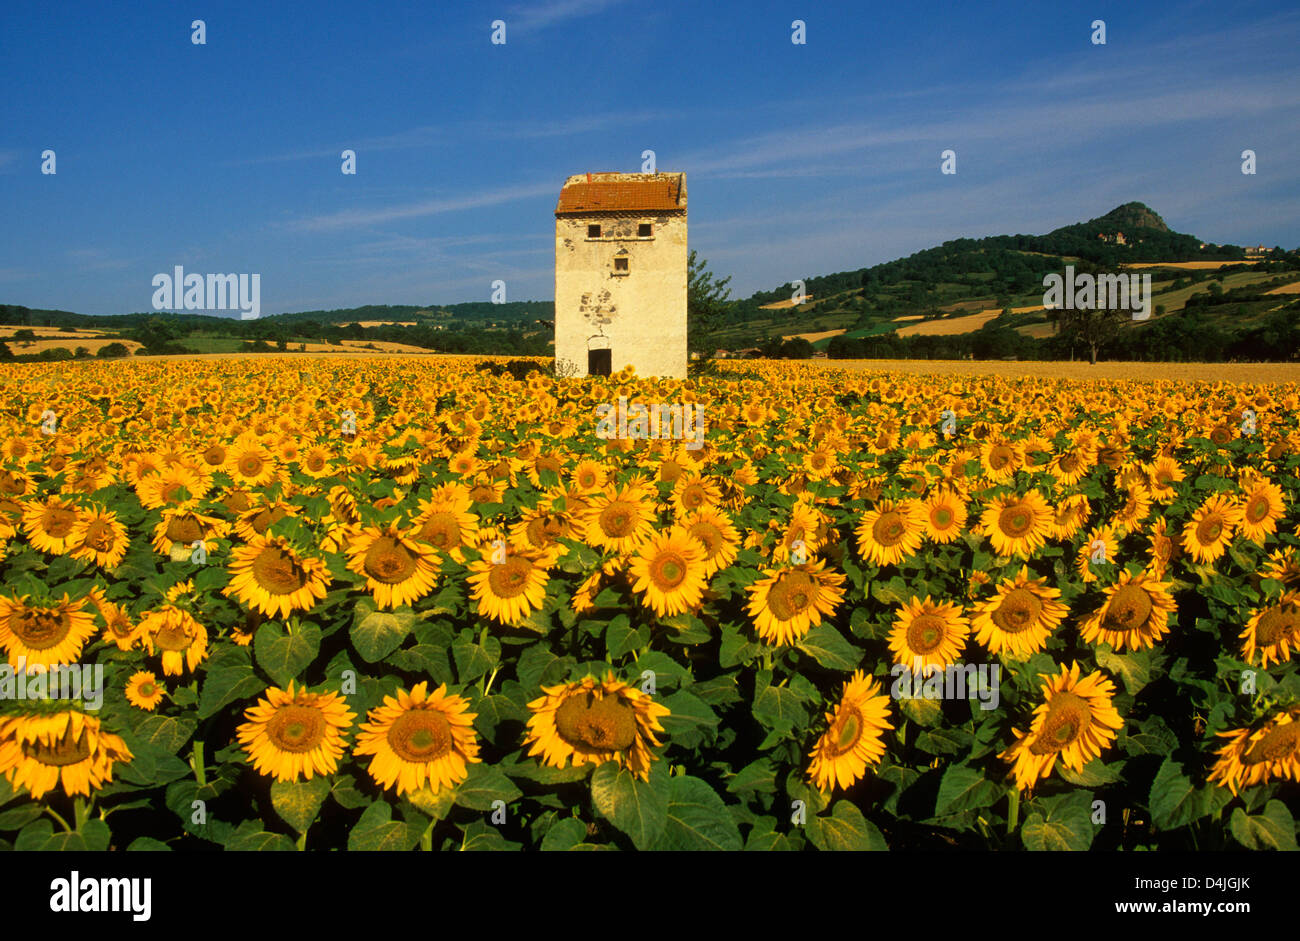 Field of sunflowers, Auvergne, France. - Stock Image